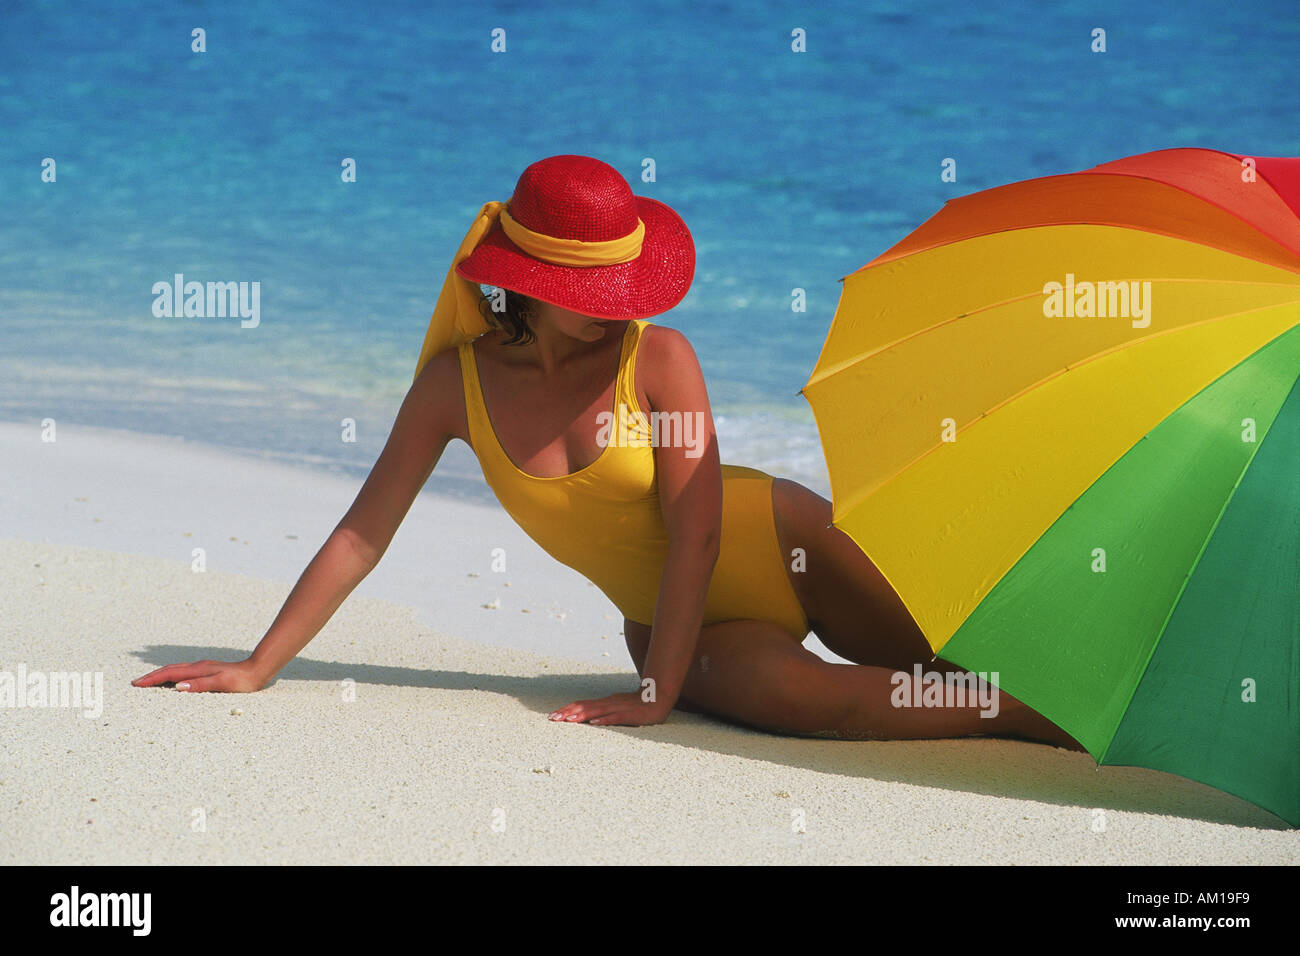 d093be154be Woman with red hat and colorful umbrella on sandy beach - Stock Image